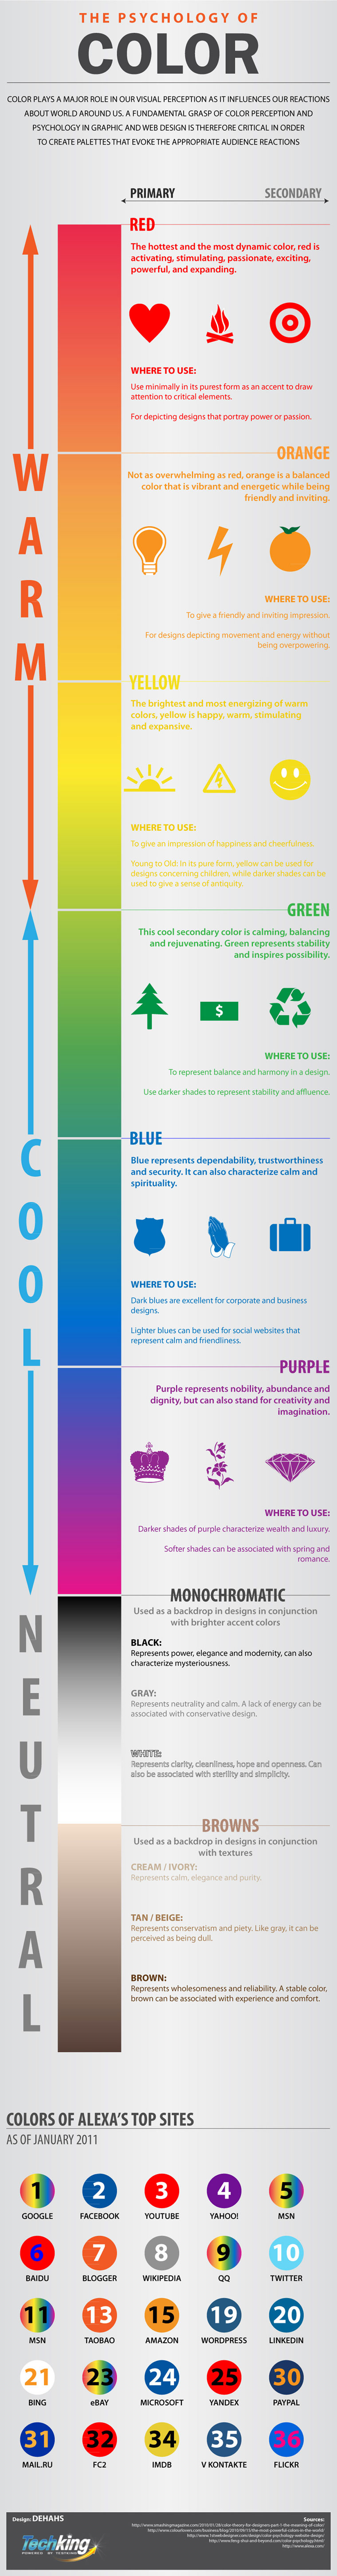 Infographic: The Psychology of Color